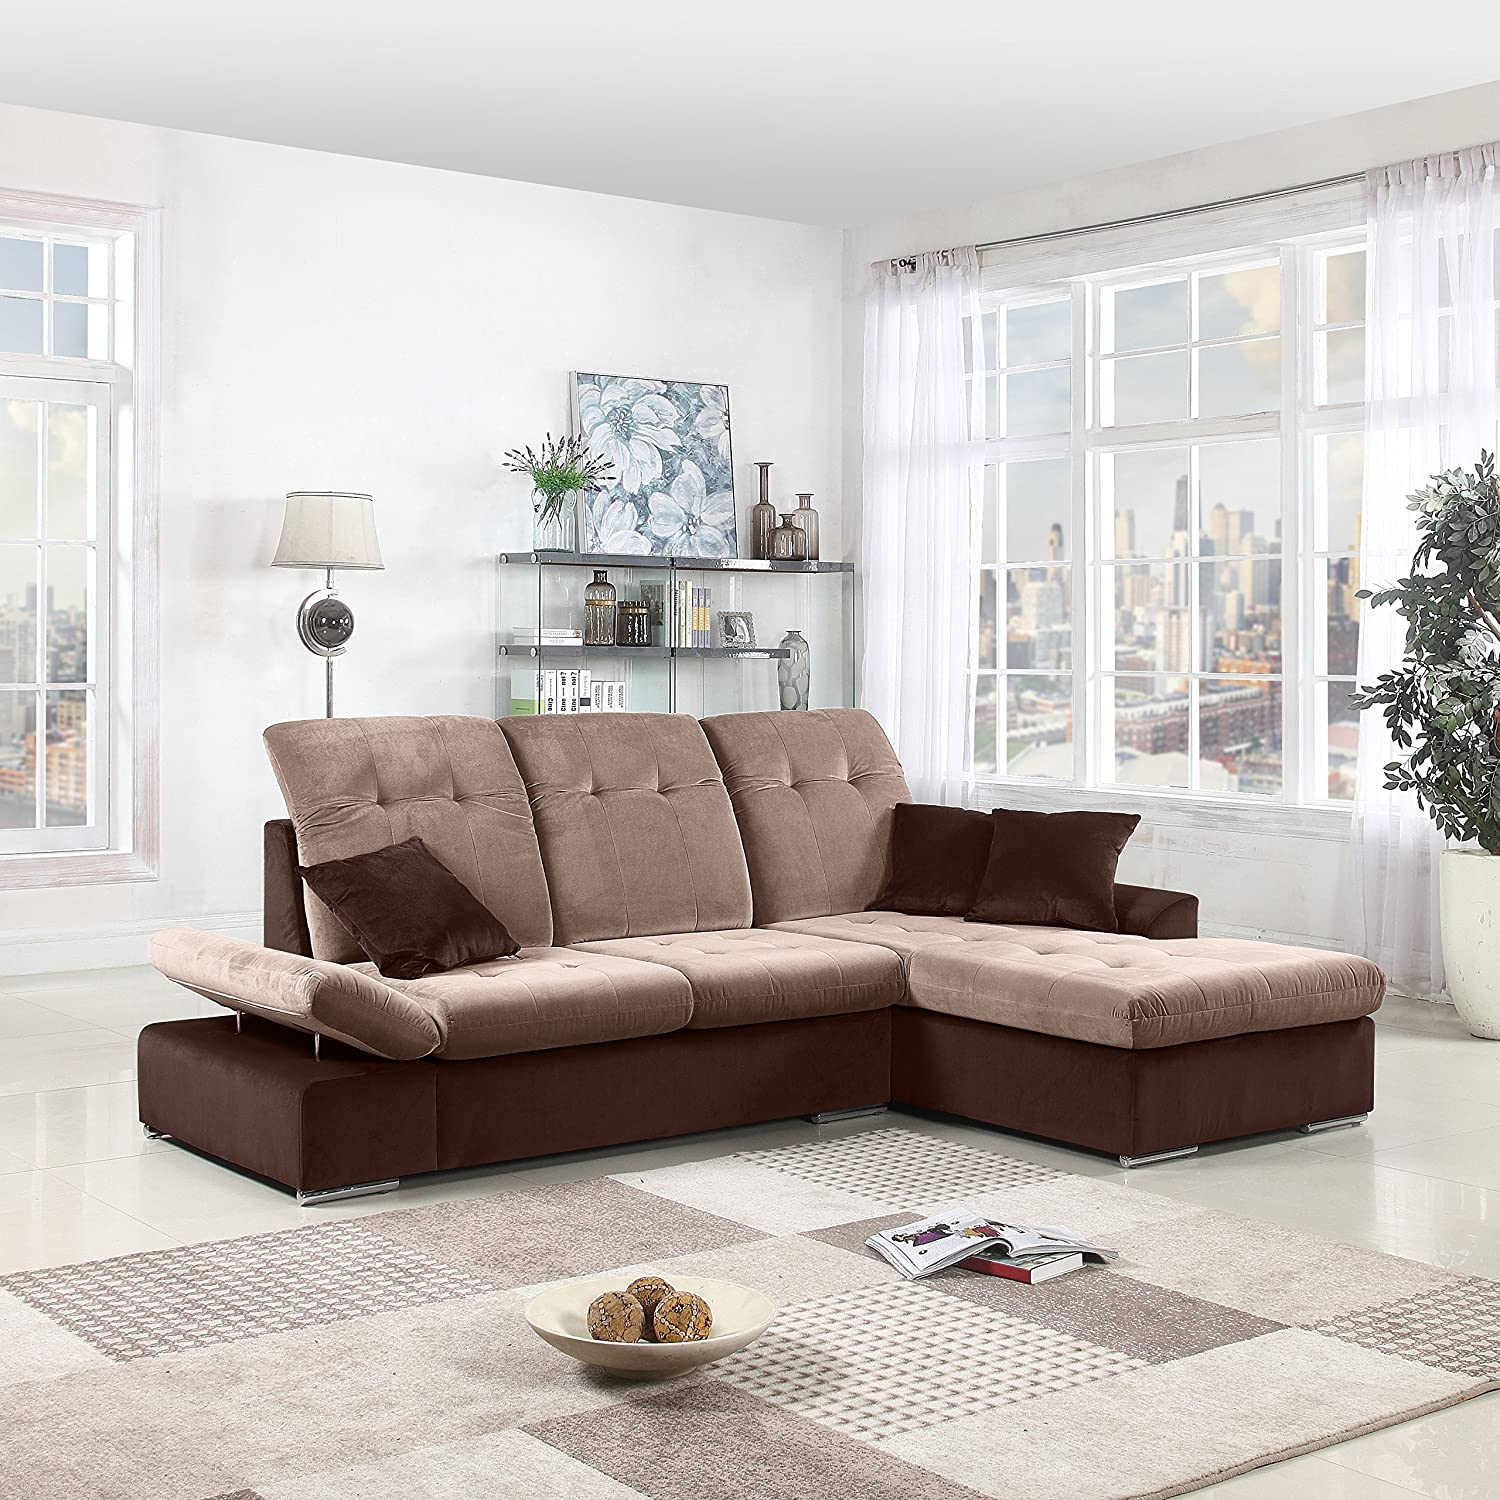 Classic Large Brush Microfiber L-Shape Sectional Sofa Couch with Chaise  Lounge and Adjustable Headrest (Brown / Hazelnut)